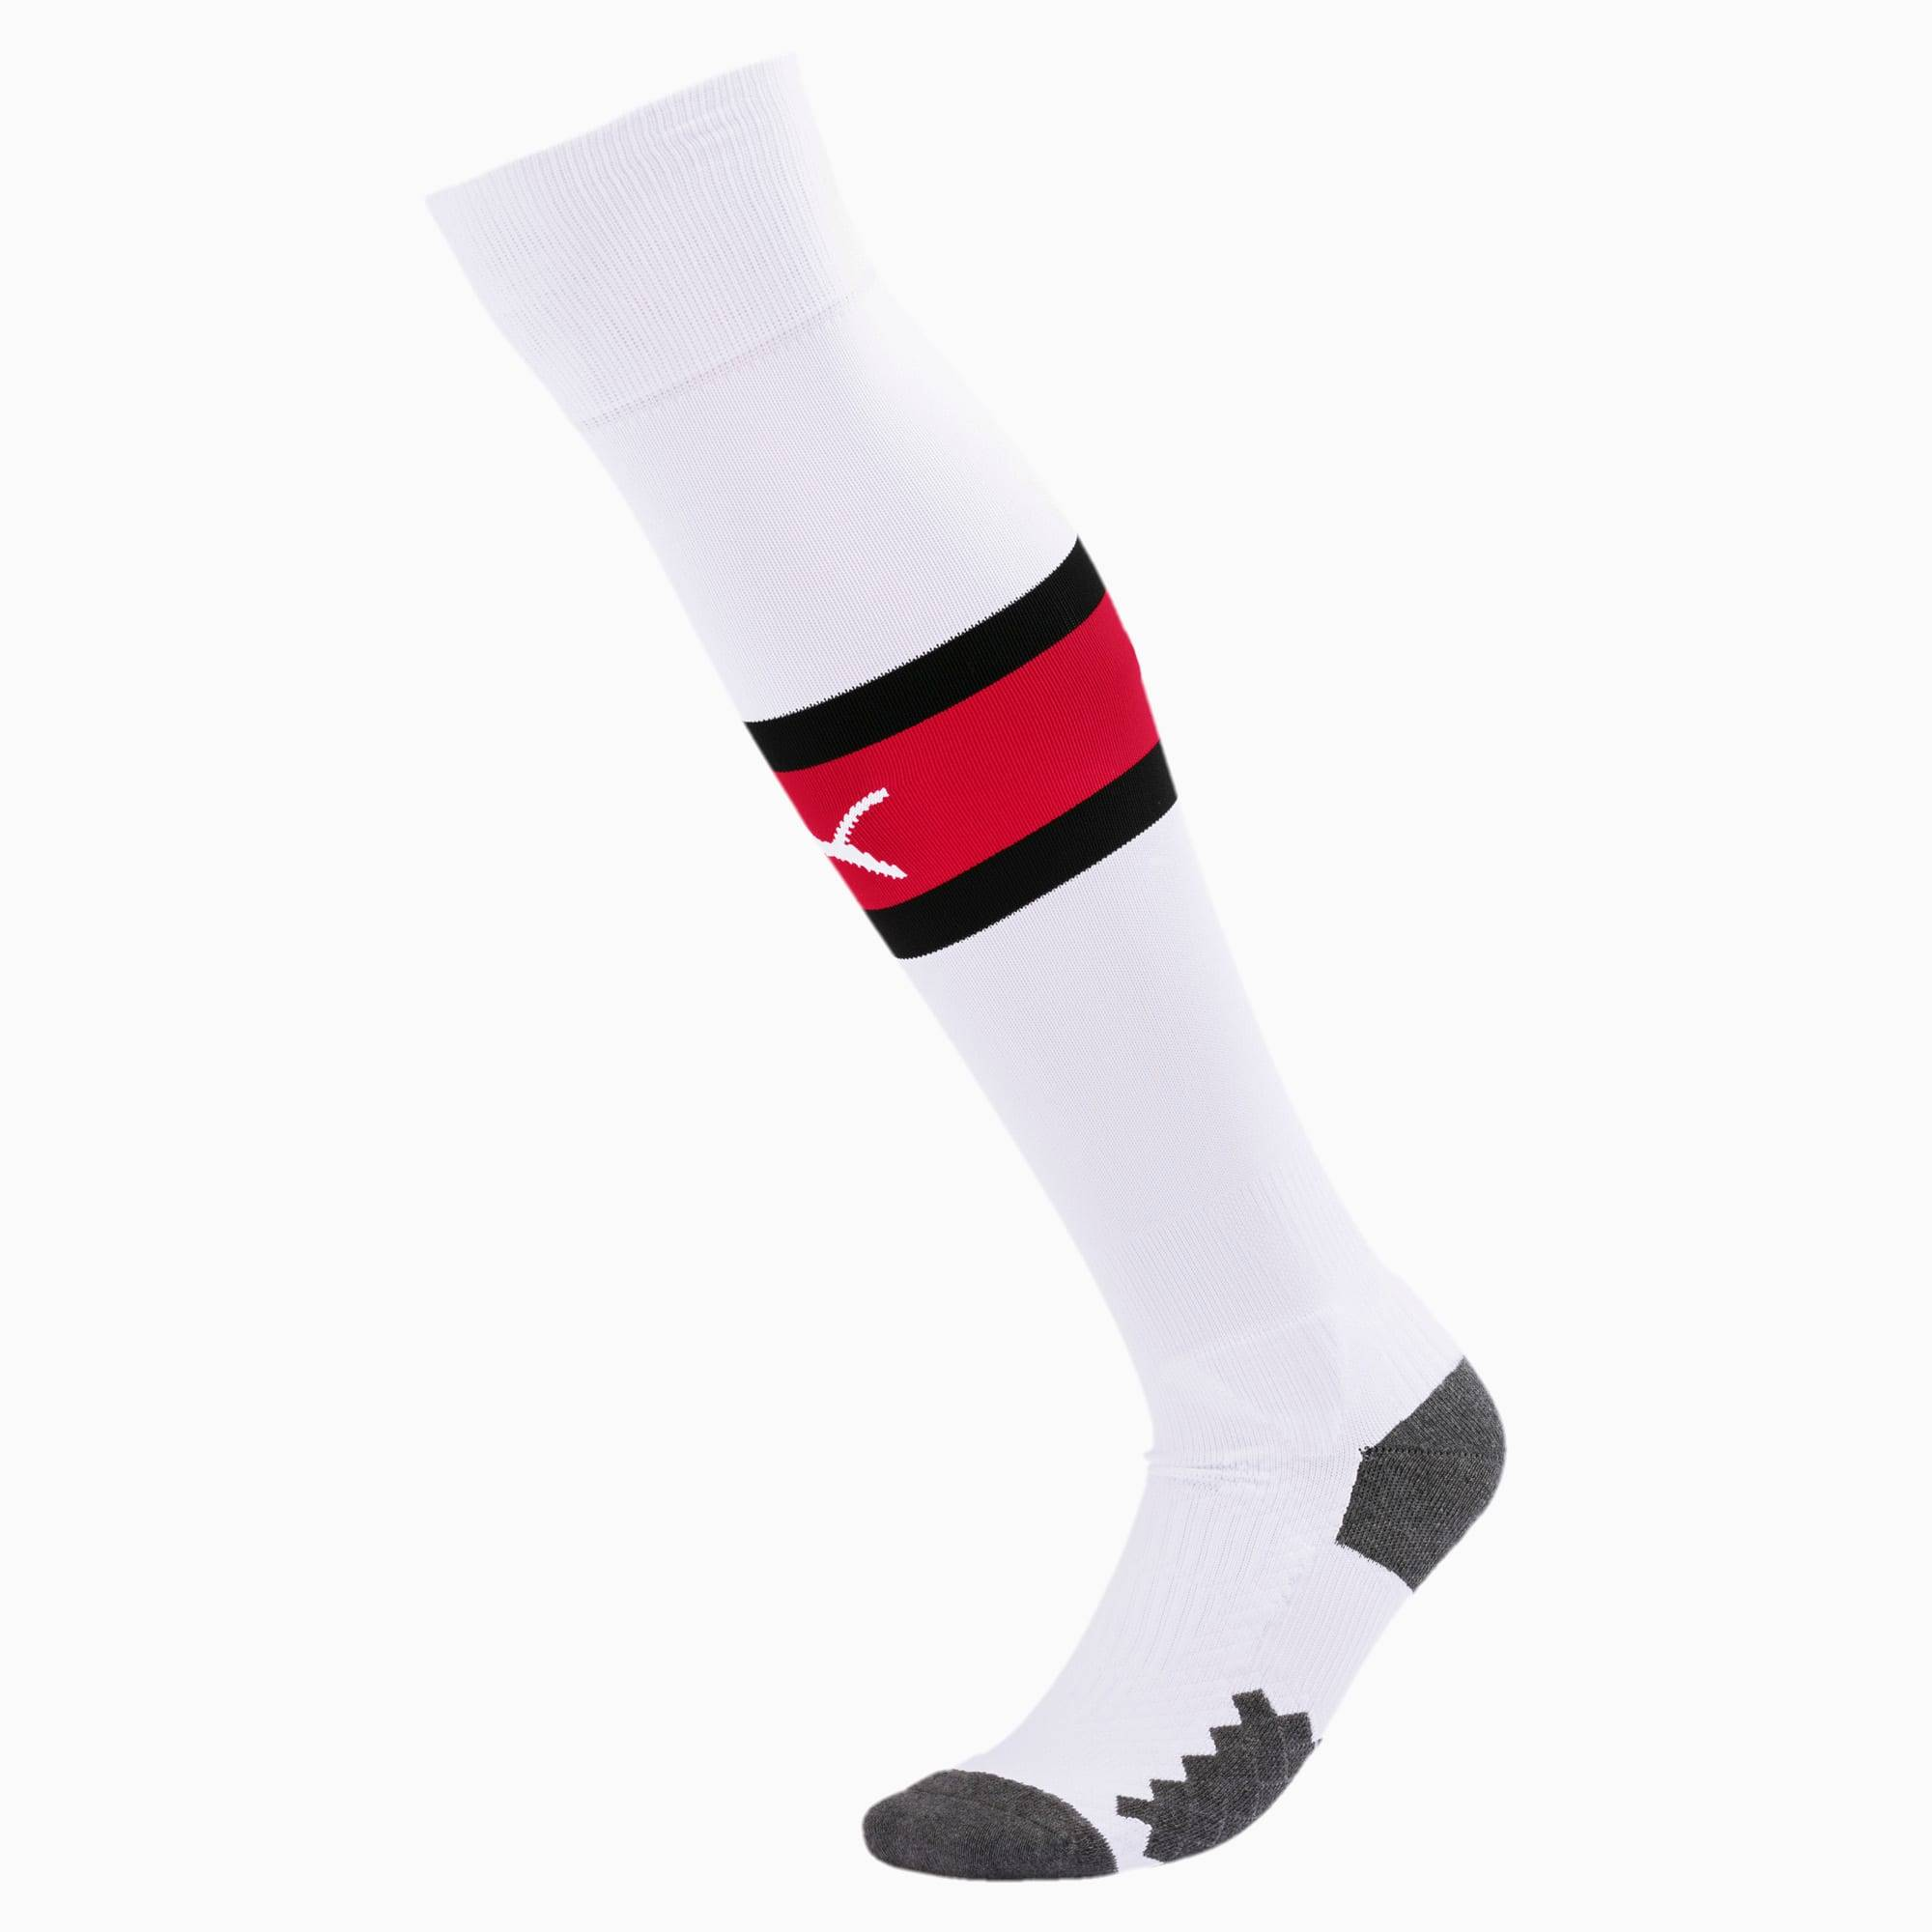 PUMA Chaussure Chaussettes AC Milan Band pour Homme, Blanc/Rouge, Taille 43-46, Chaussures